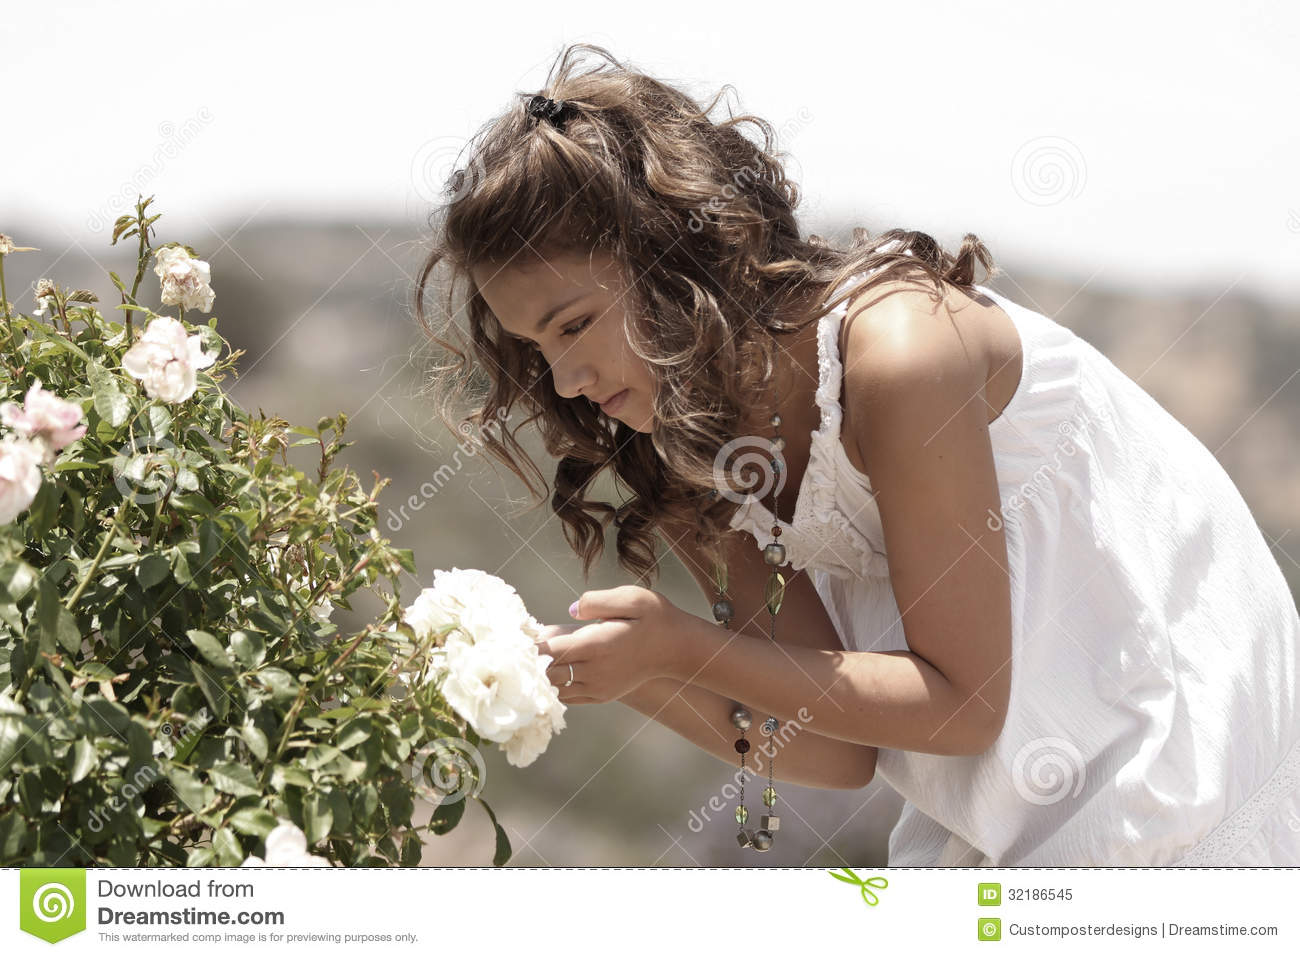 A girl looking at a flower.